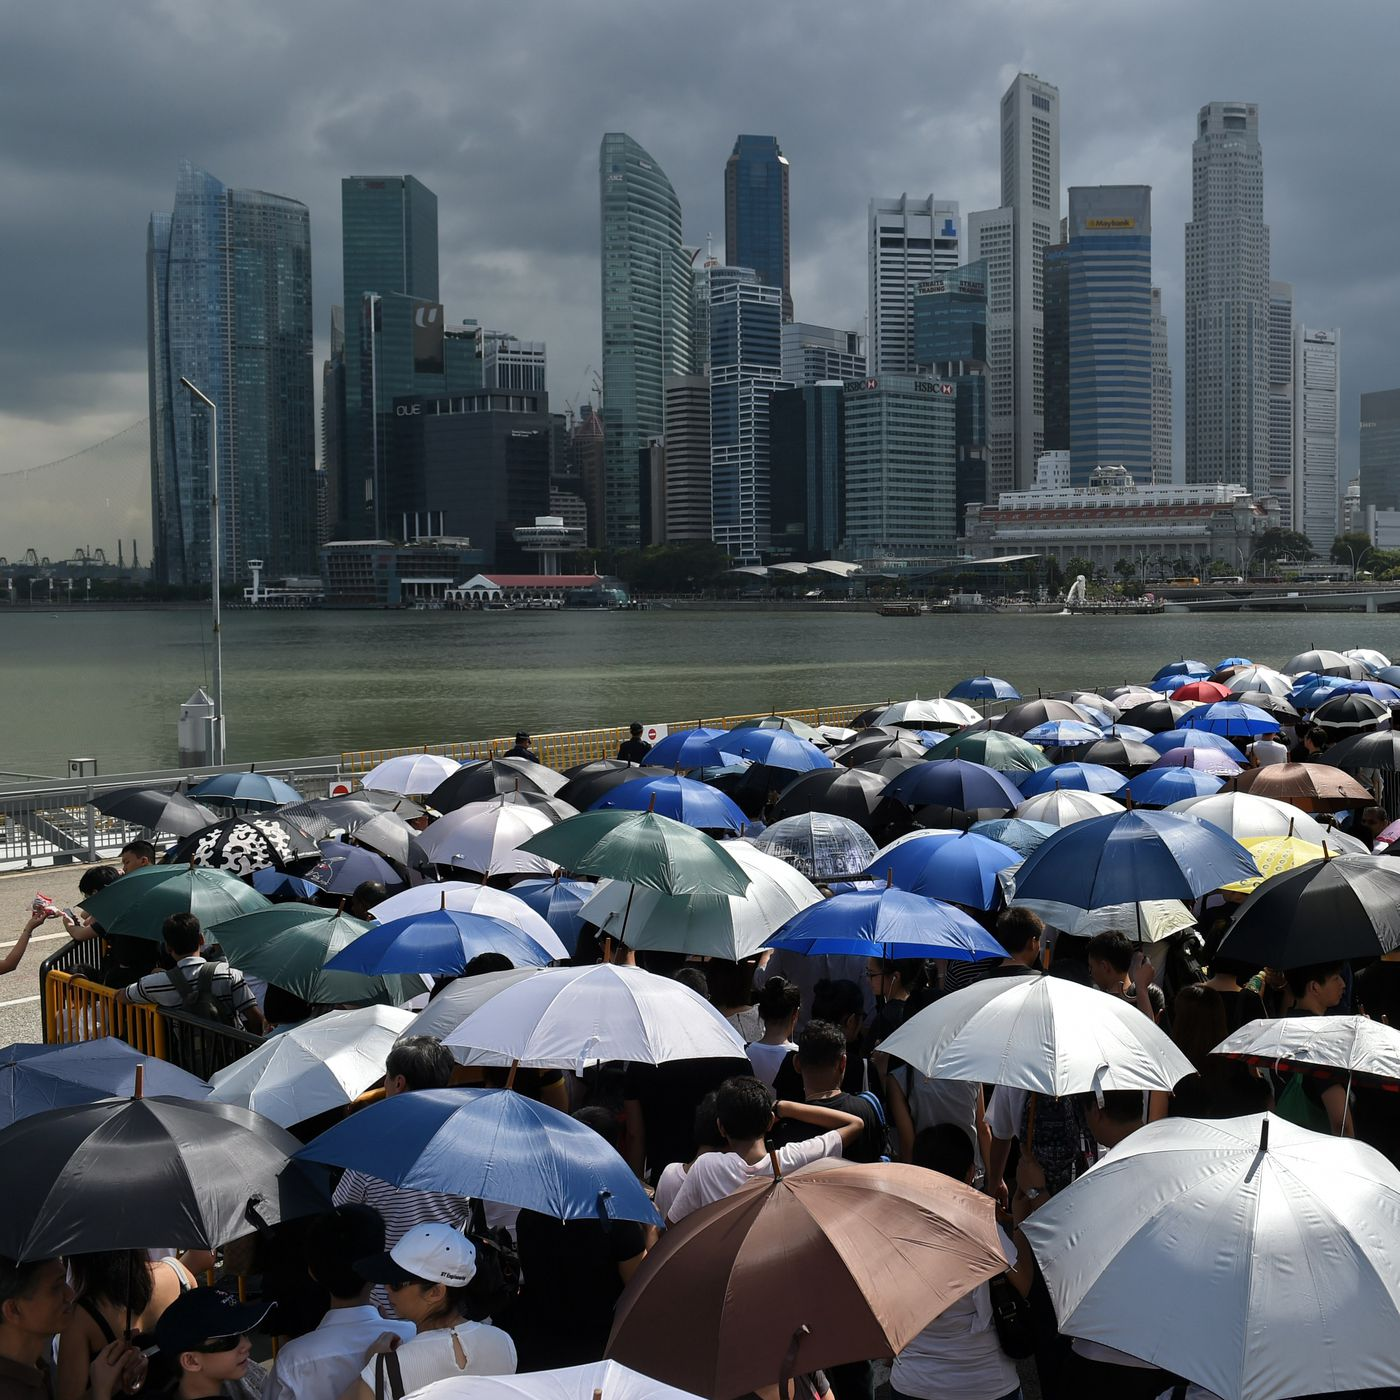 vox.com - Ezra Klein - Is Singapore's 'miracle' health care system the answer for America?